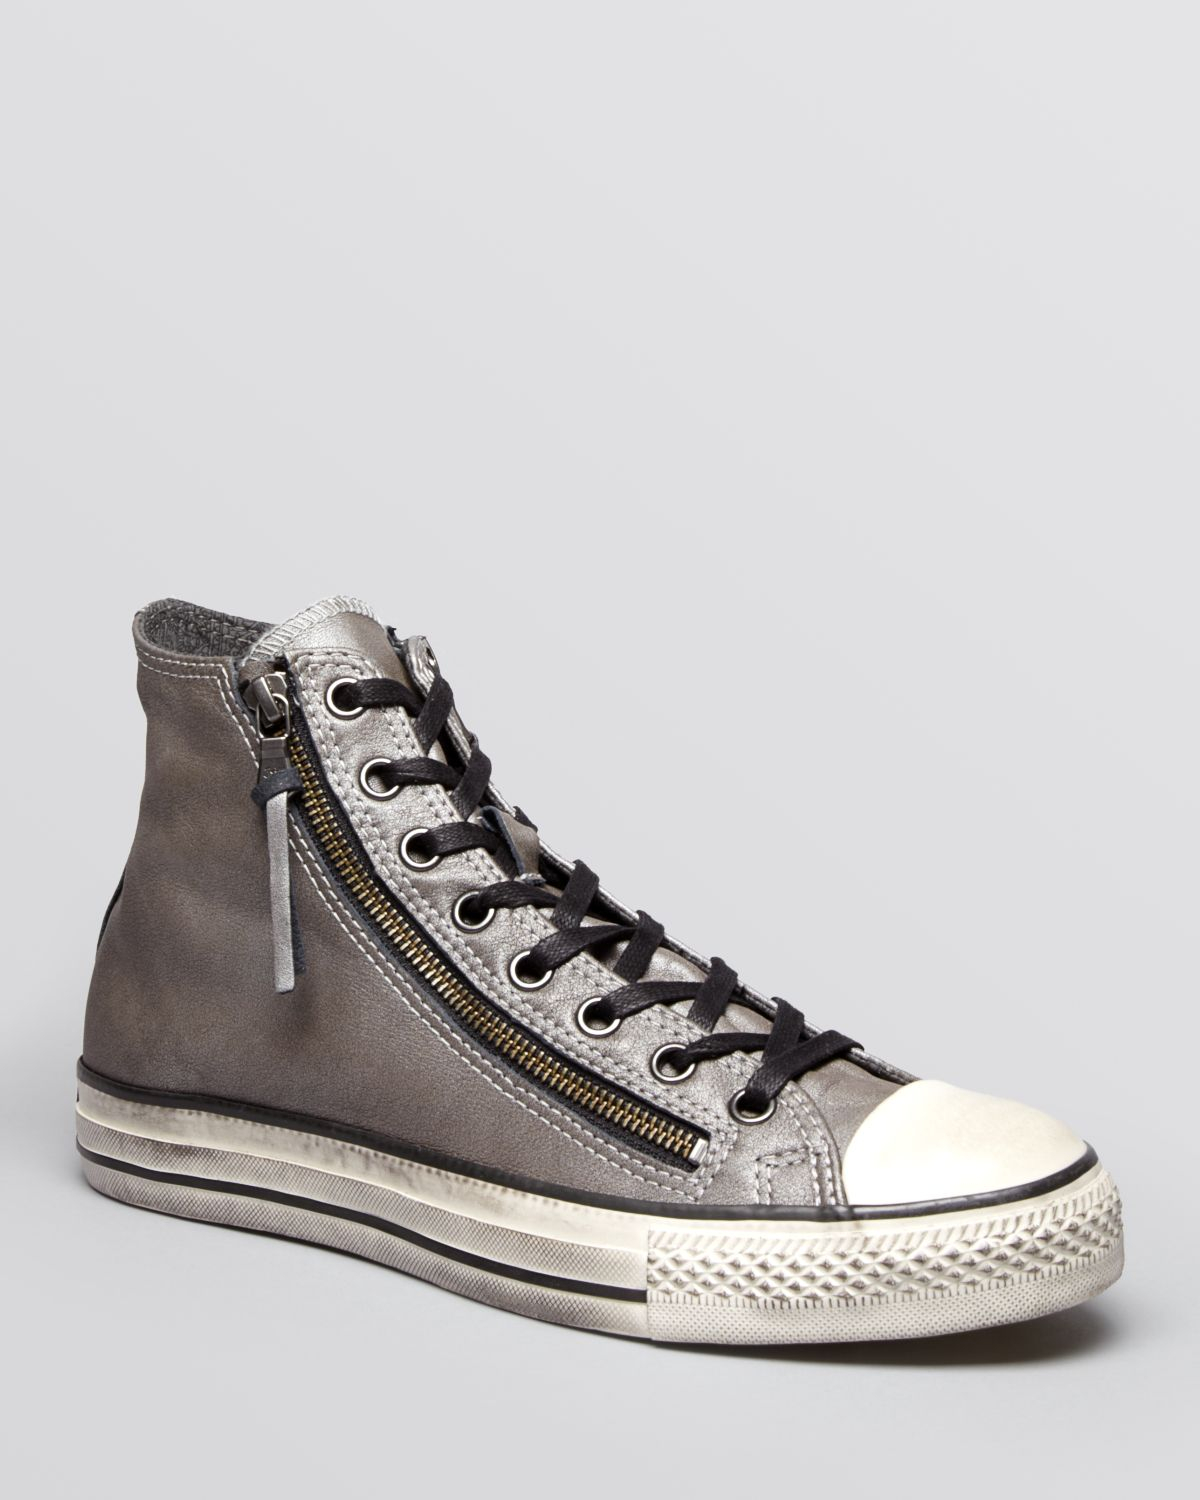 95c07d264fa88 ... sweden gallery. previously sold at bloomingdales mens john varvatos  converse 07118 d1116